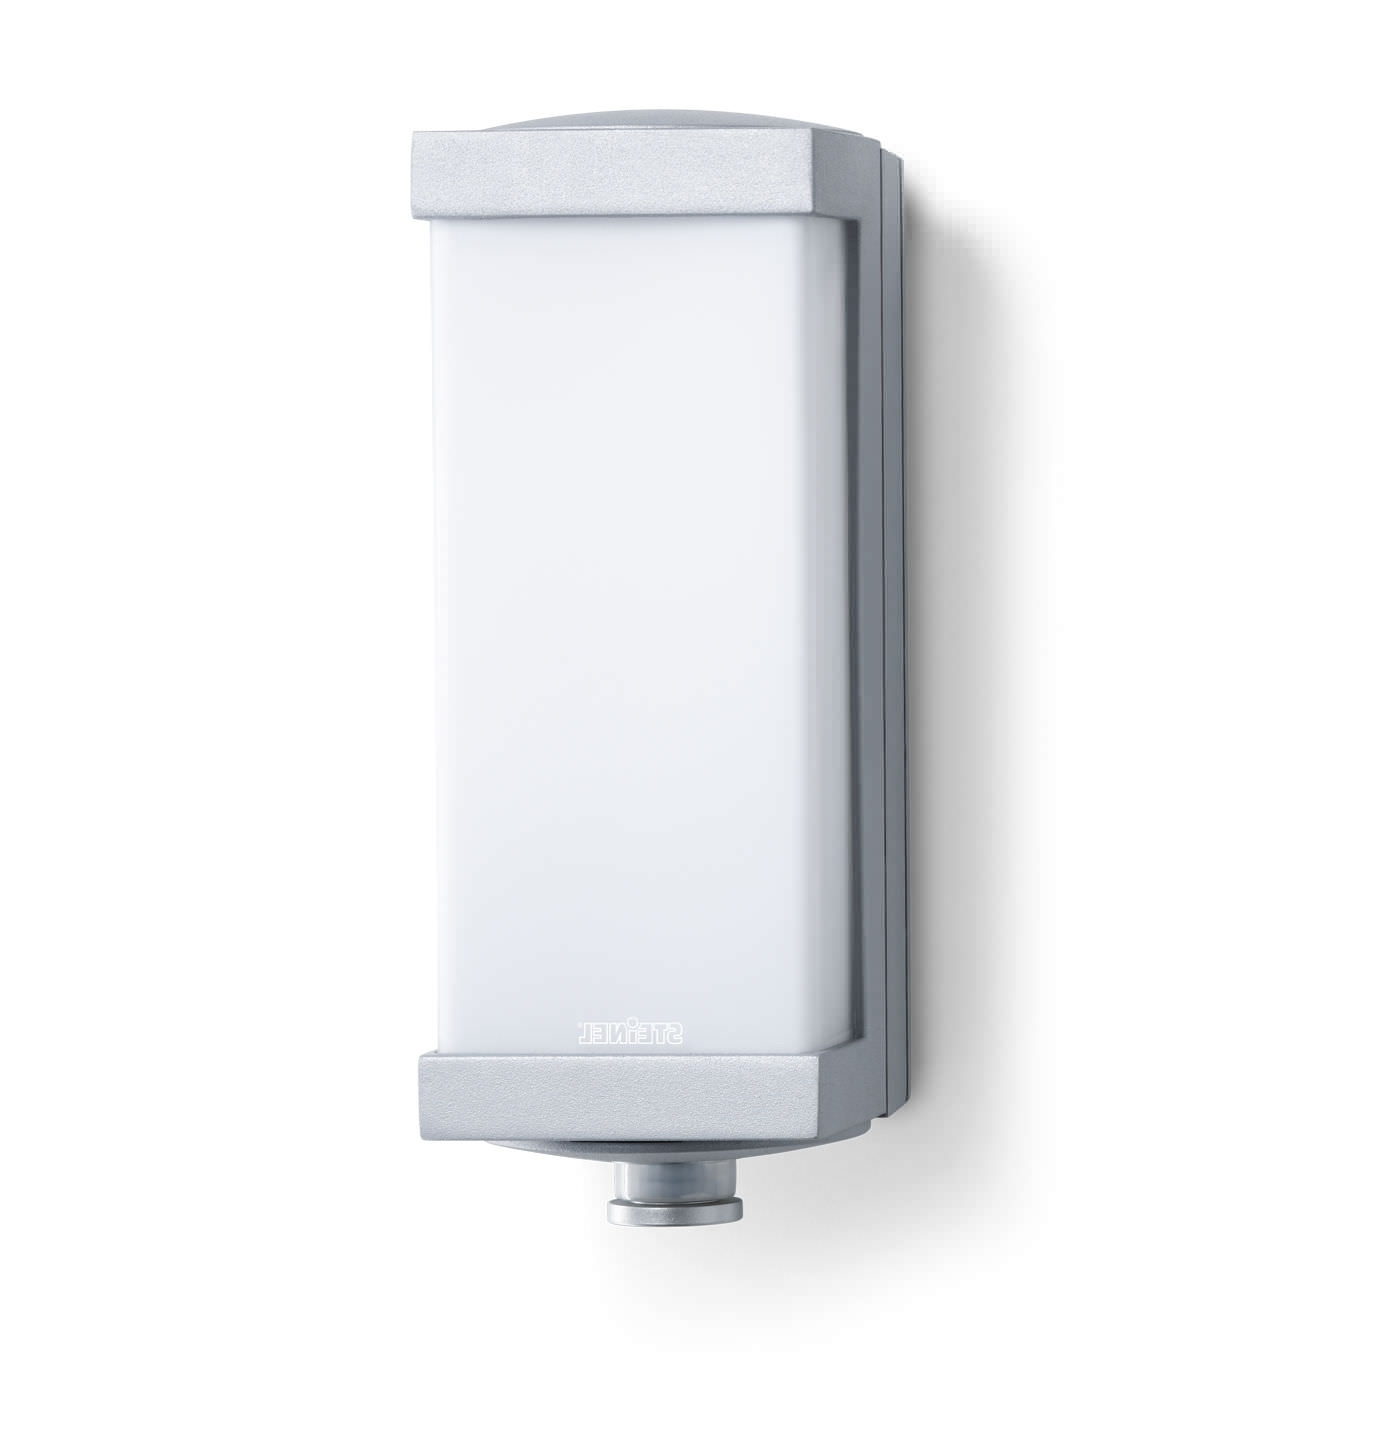 Famous Outdoor Wall Lights With Motion Sensors • Outdoor Lighting Intended For Outdoor Wall Lighting With Motion Sensor (View 5 of 20)